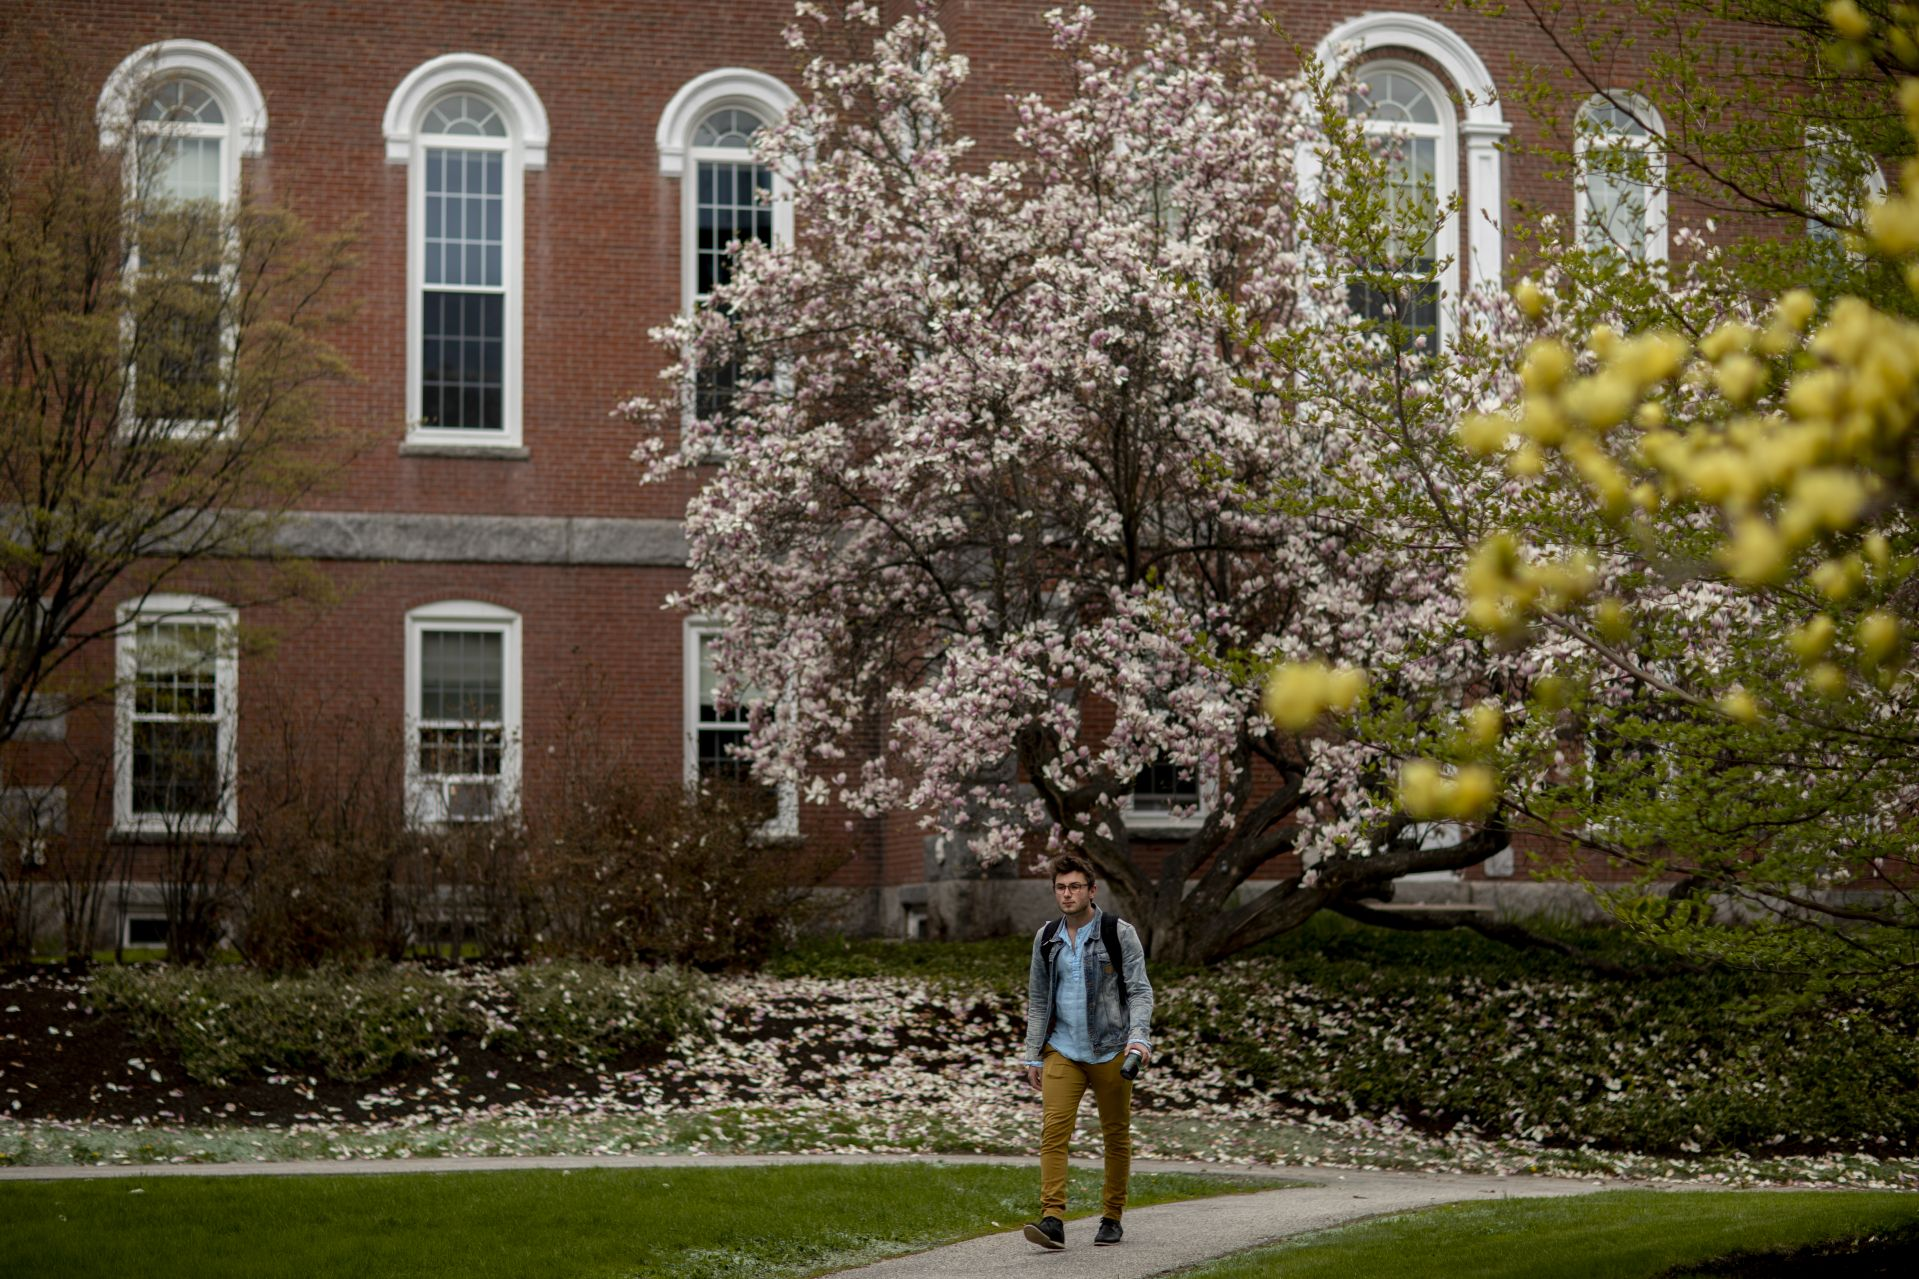 The Hathorn Hall magnolia tree lets go, and Reed Sandbach '20 walks on by.